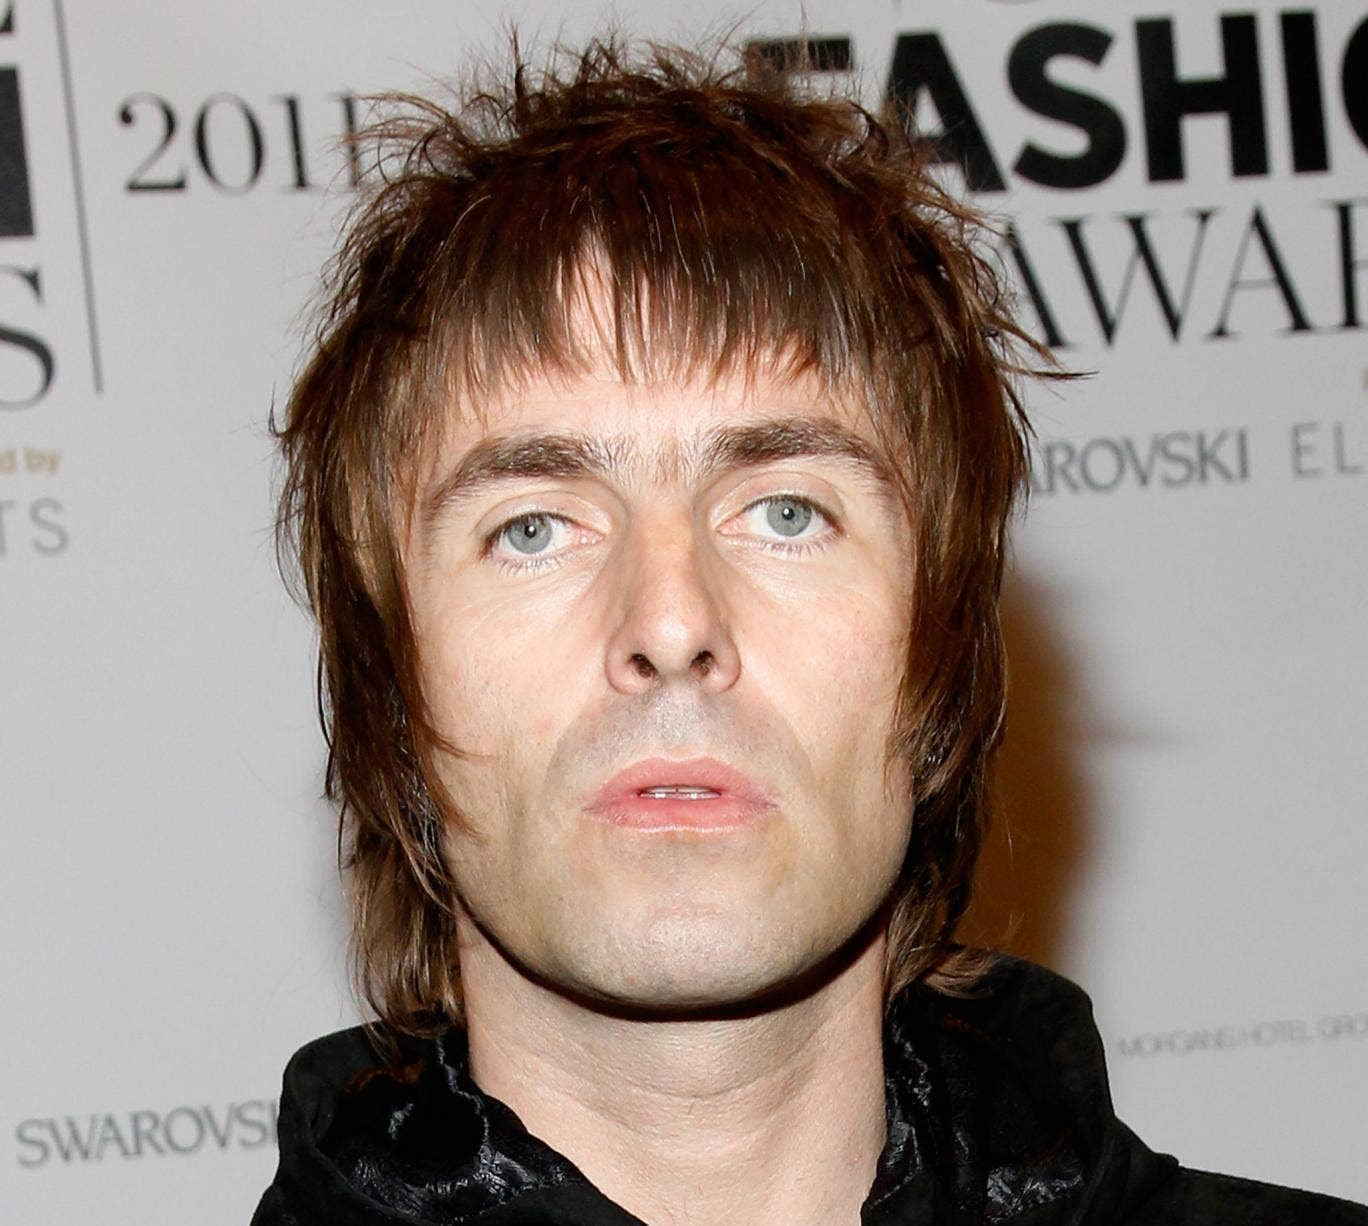 Liam Gallagher has slammed Daft Punk, claiming he could have written 'Get Lucky' in an hour